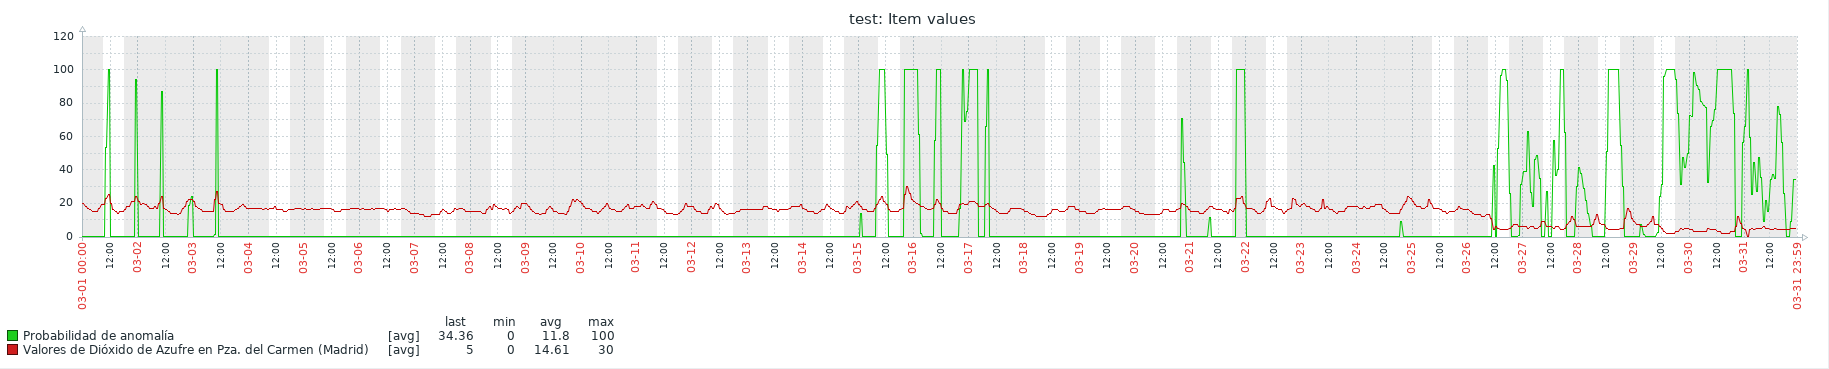 anomaly-detection-graph-4